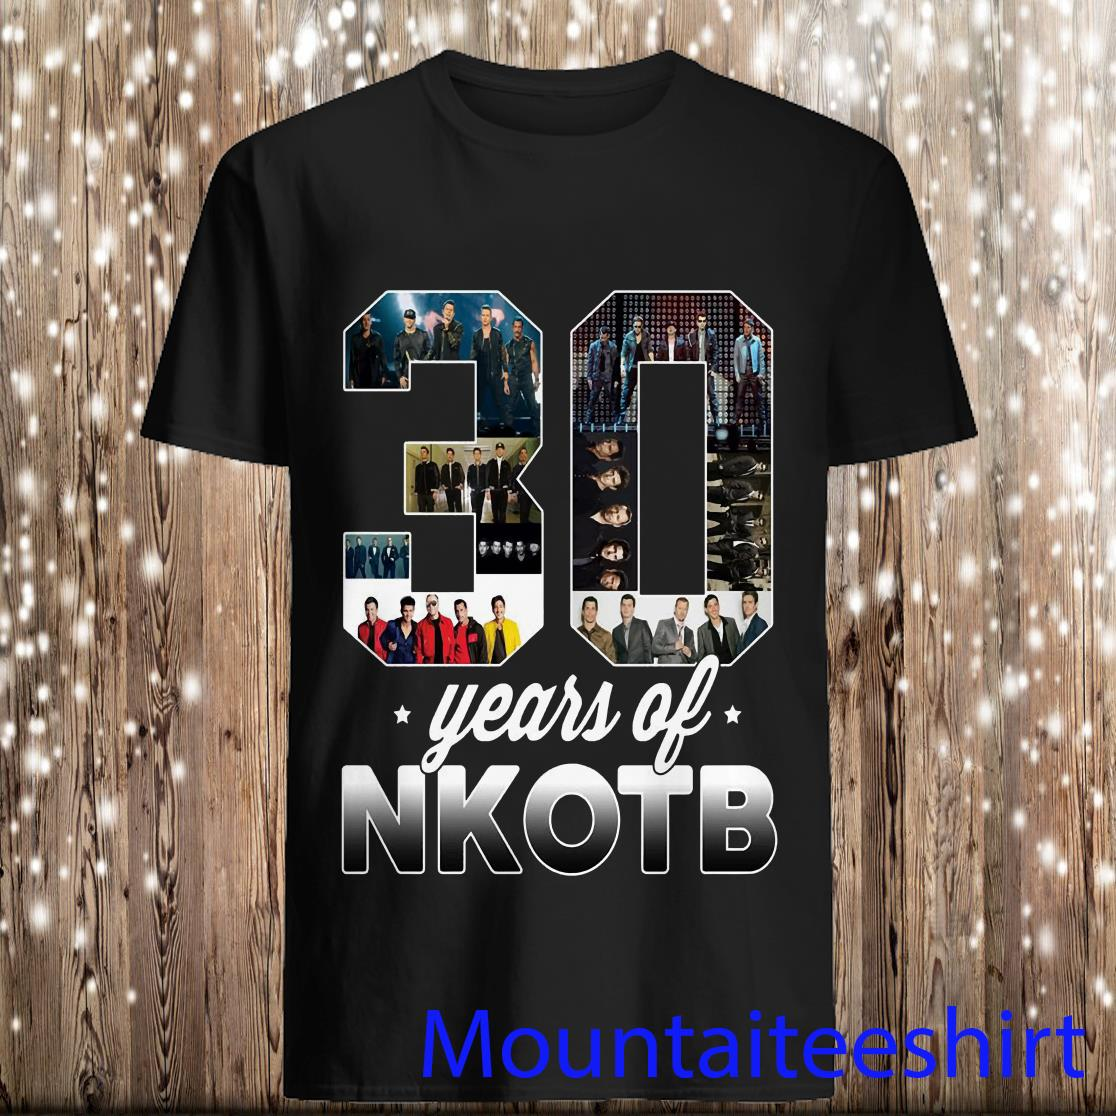 Lovely 30 Years Of Nkotb Shirt